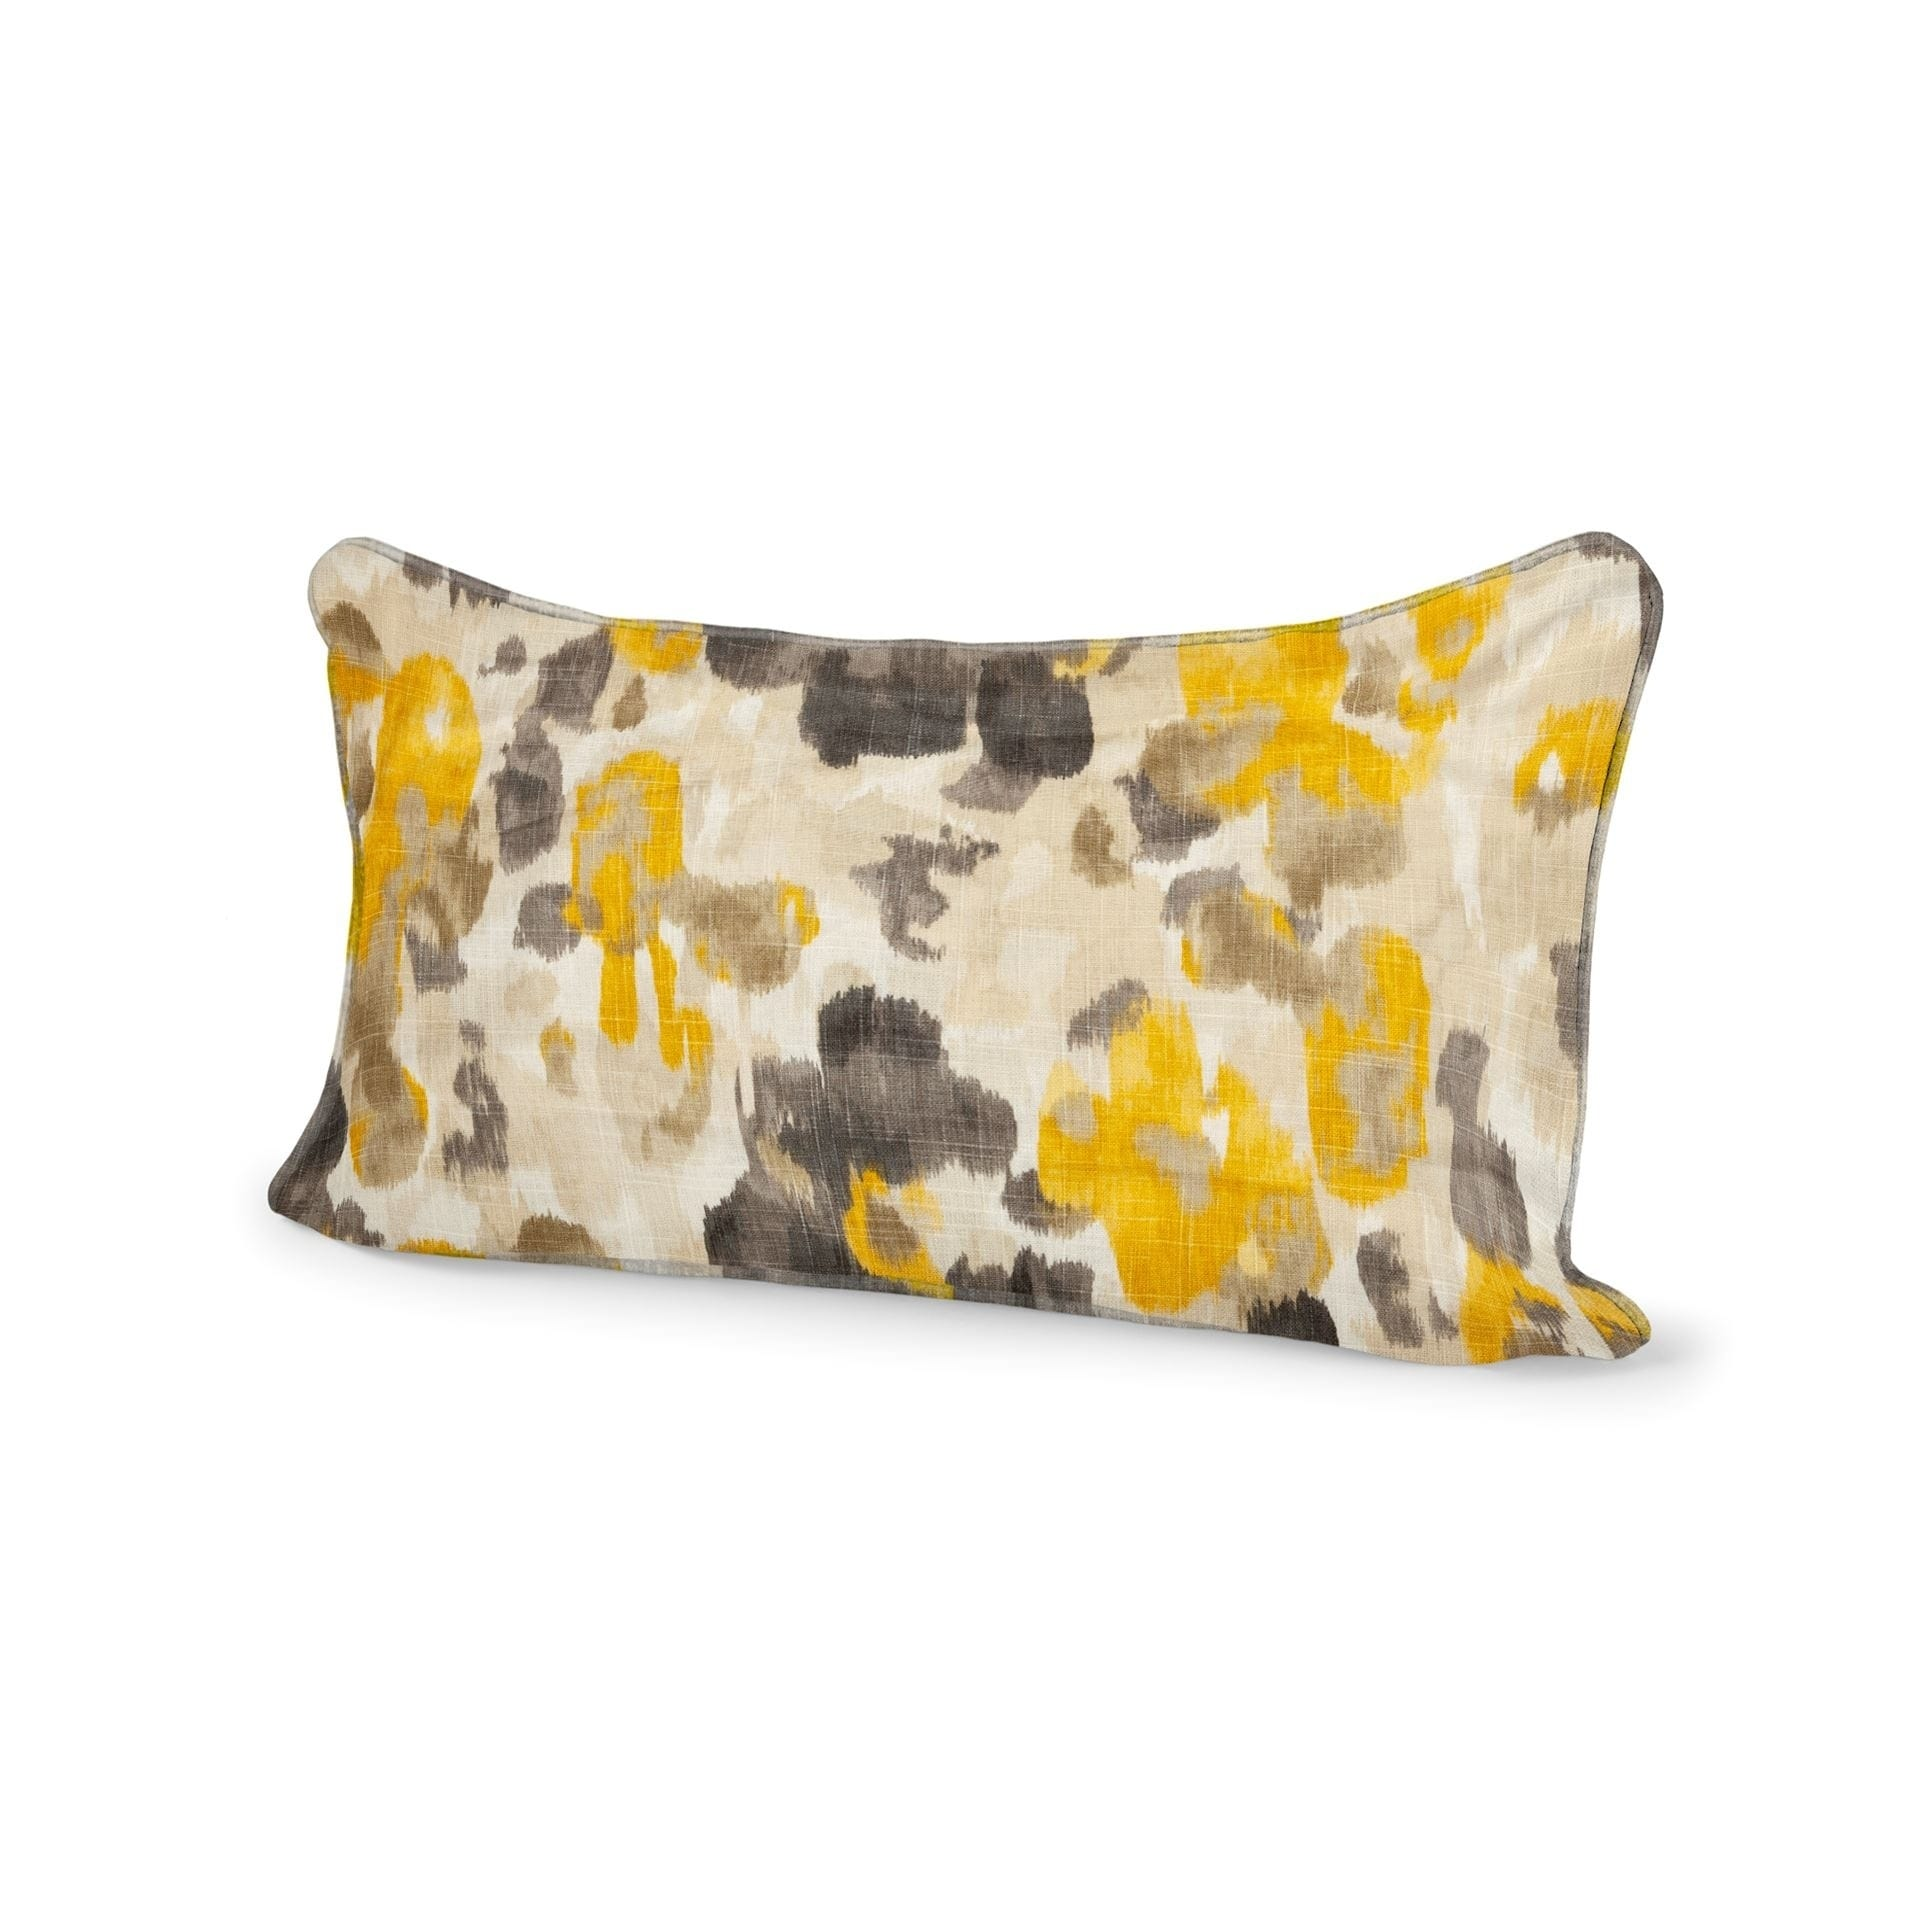 Mercana Sunflower V 13 x 21 (cover only) Decorative Pillow